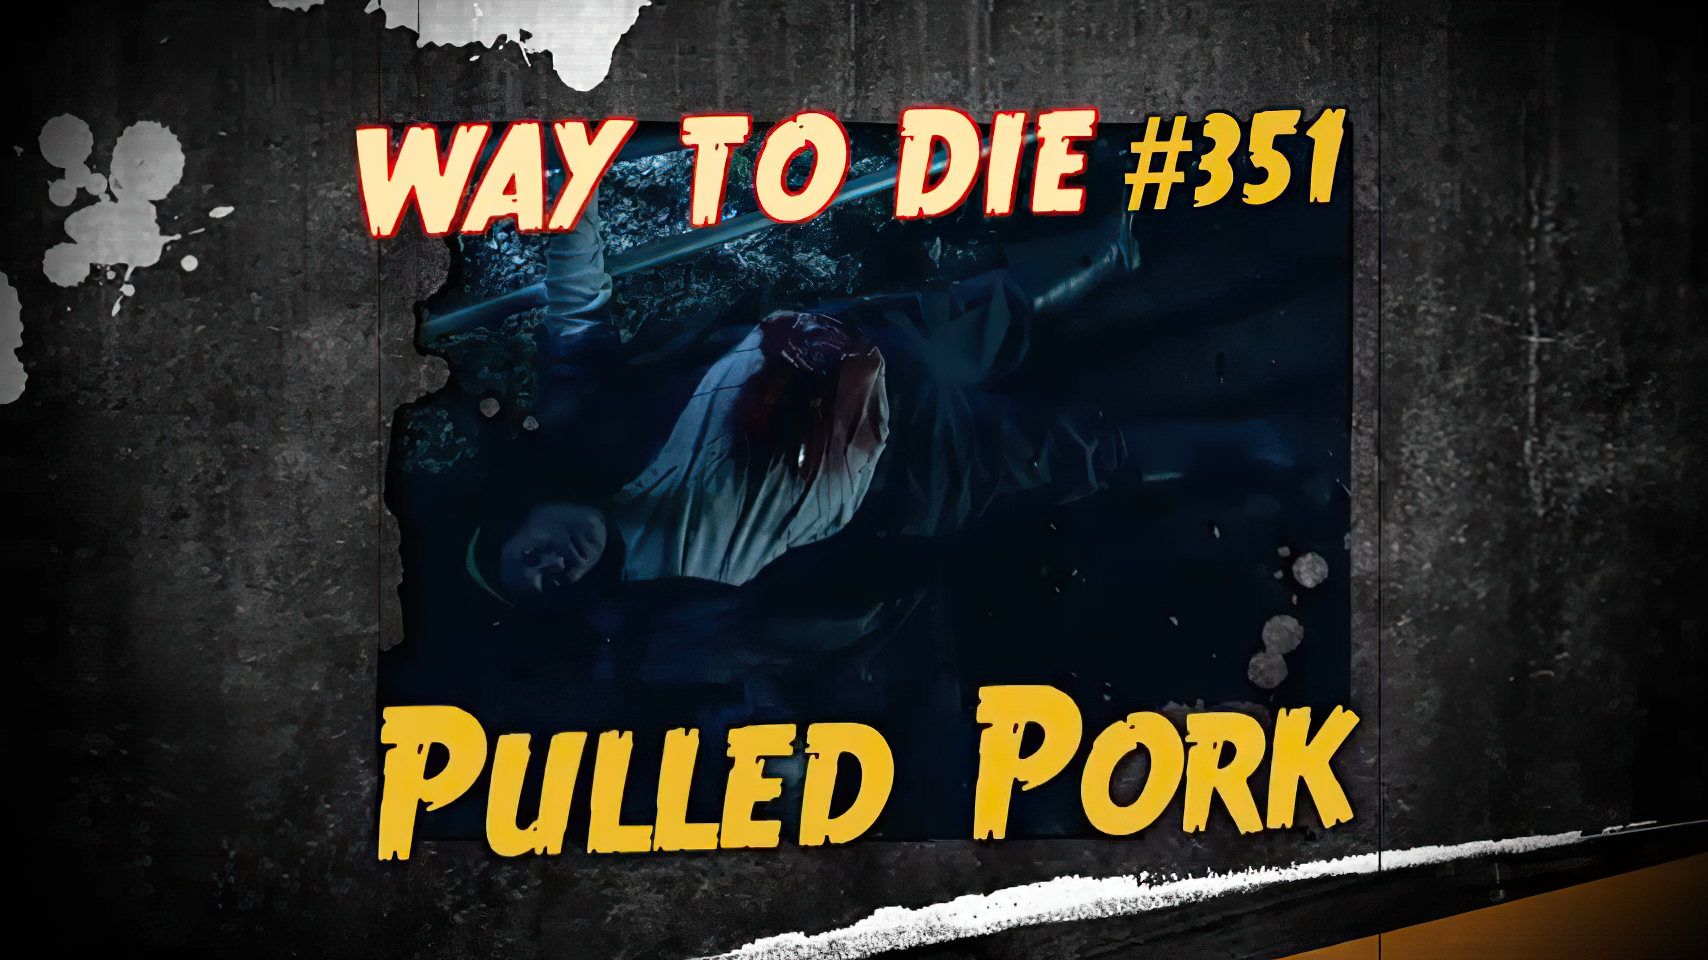 Name Of The Death Is A Pun On Pulled Pork